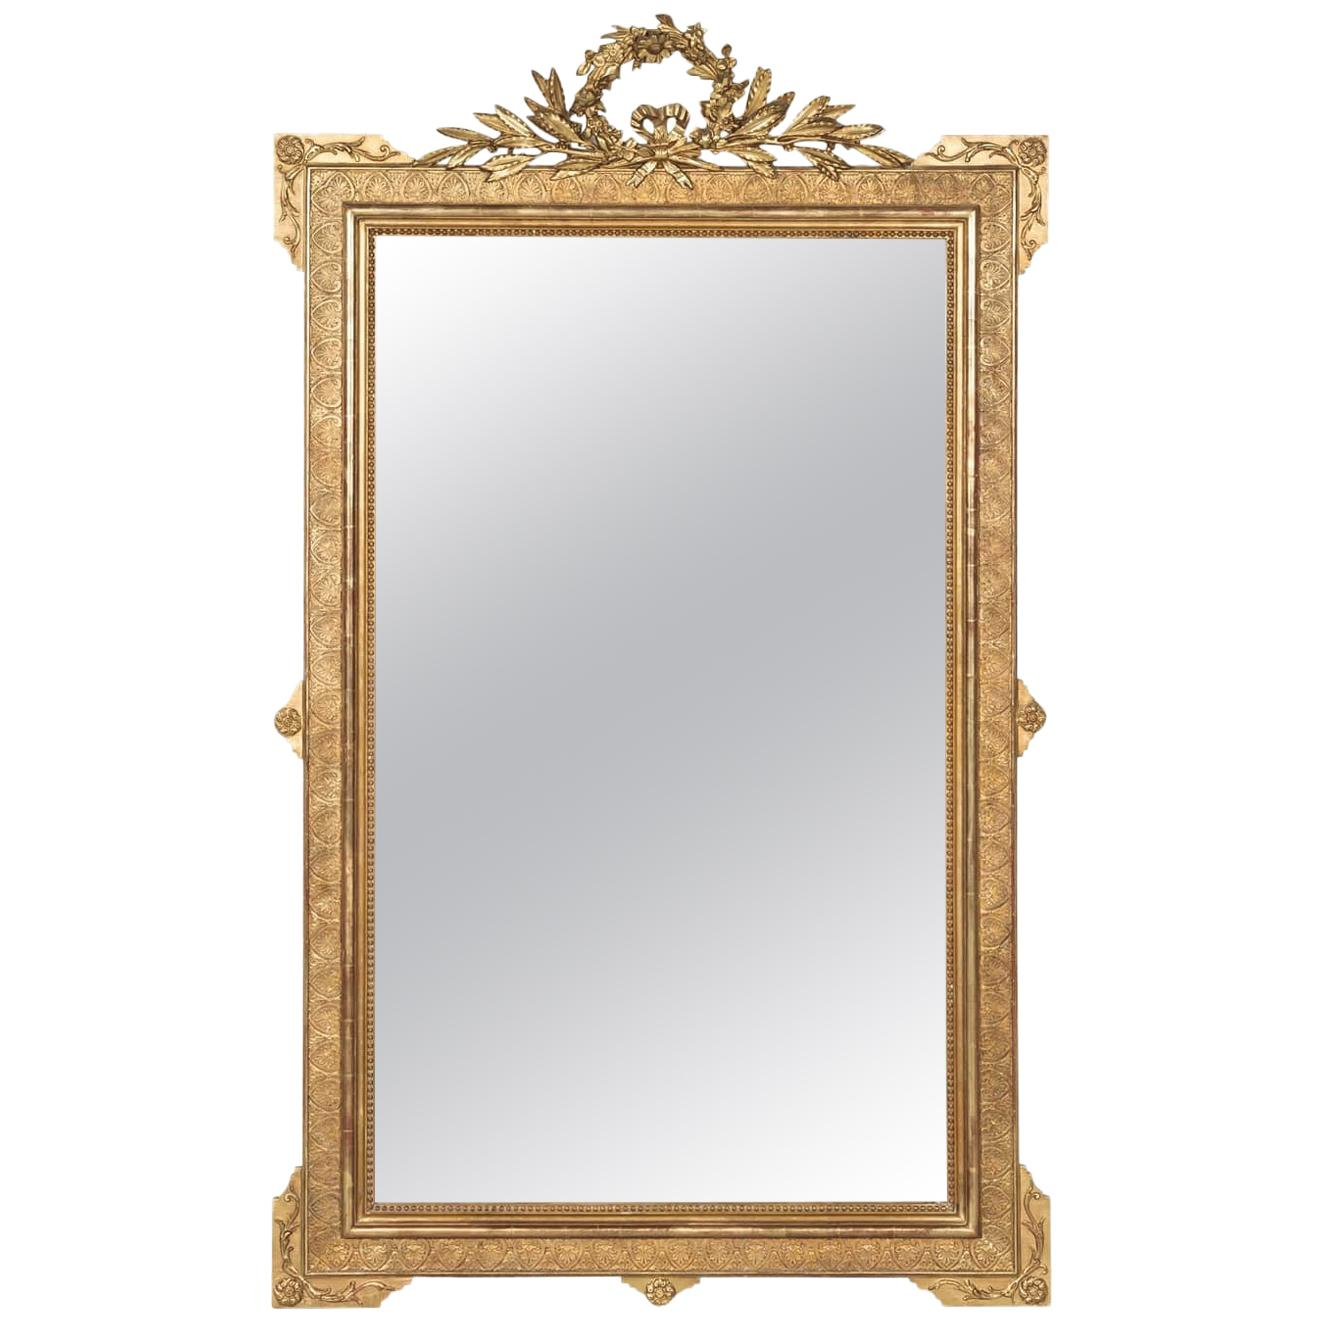 19th Century French Louis XVI Style Carved Giltwood Mirror